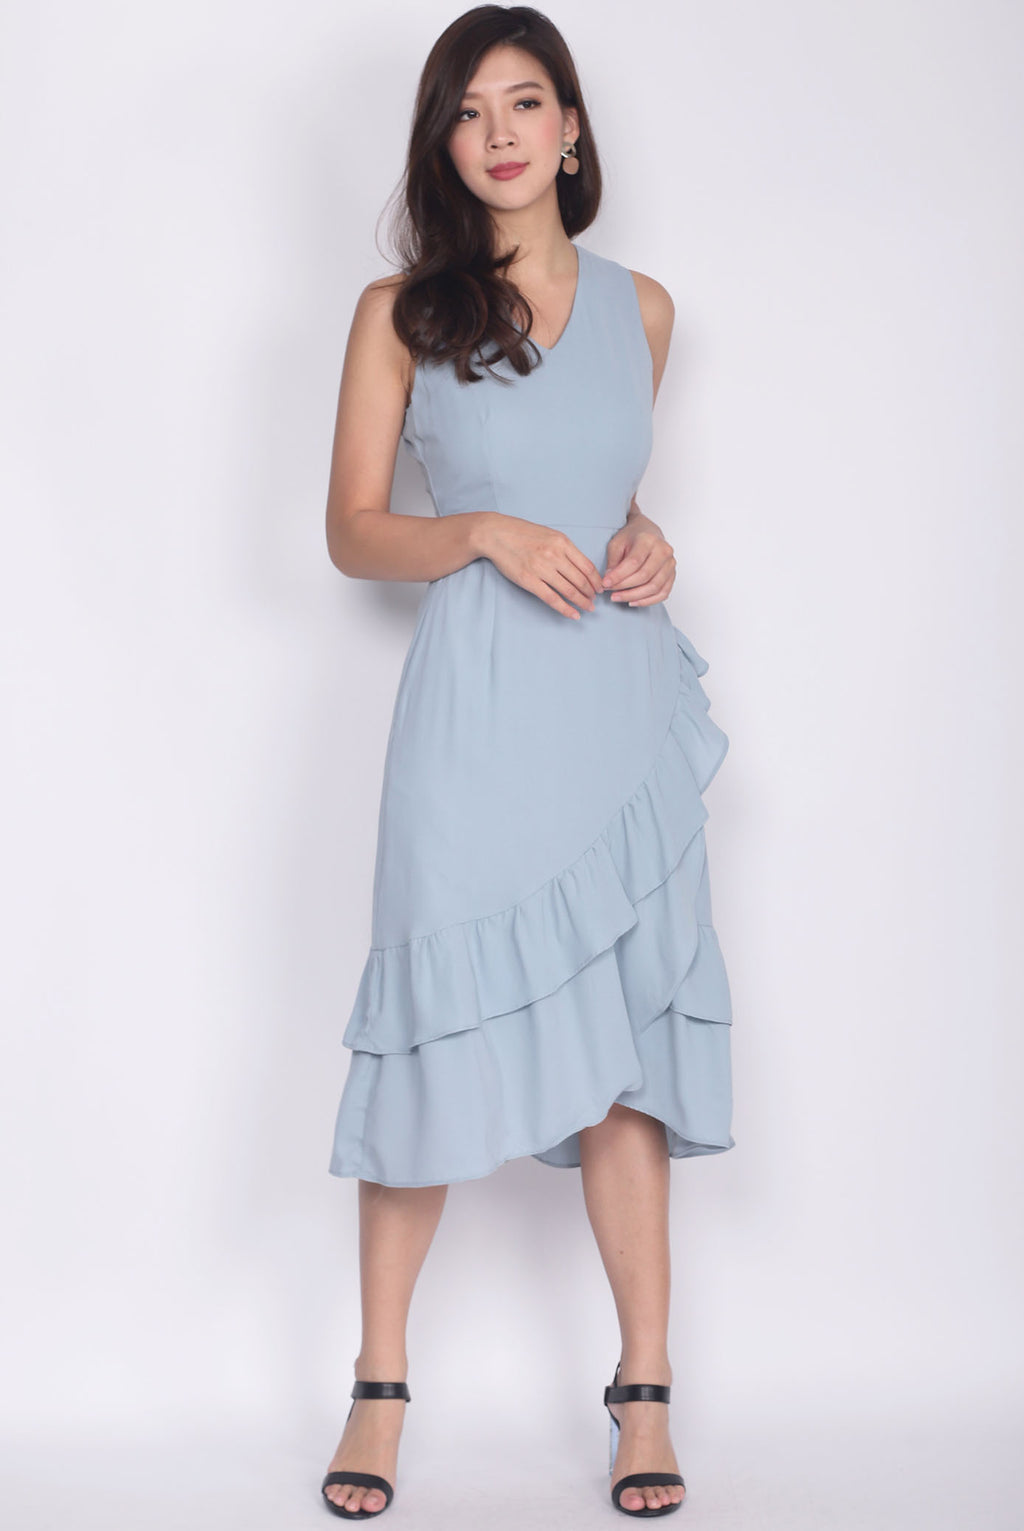 TDC Herlinda Tiered Fishtail Midi Dress In Ash Blue